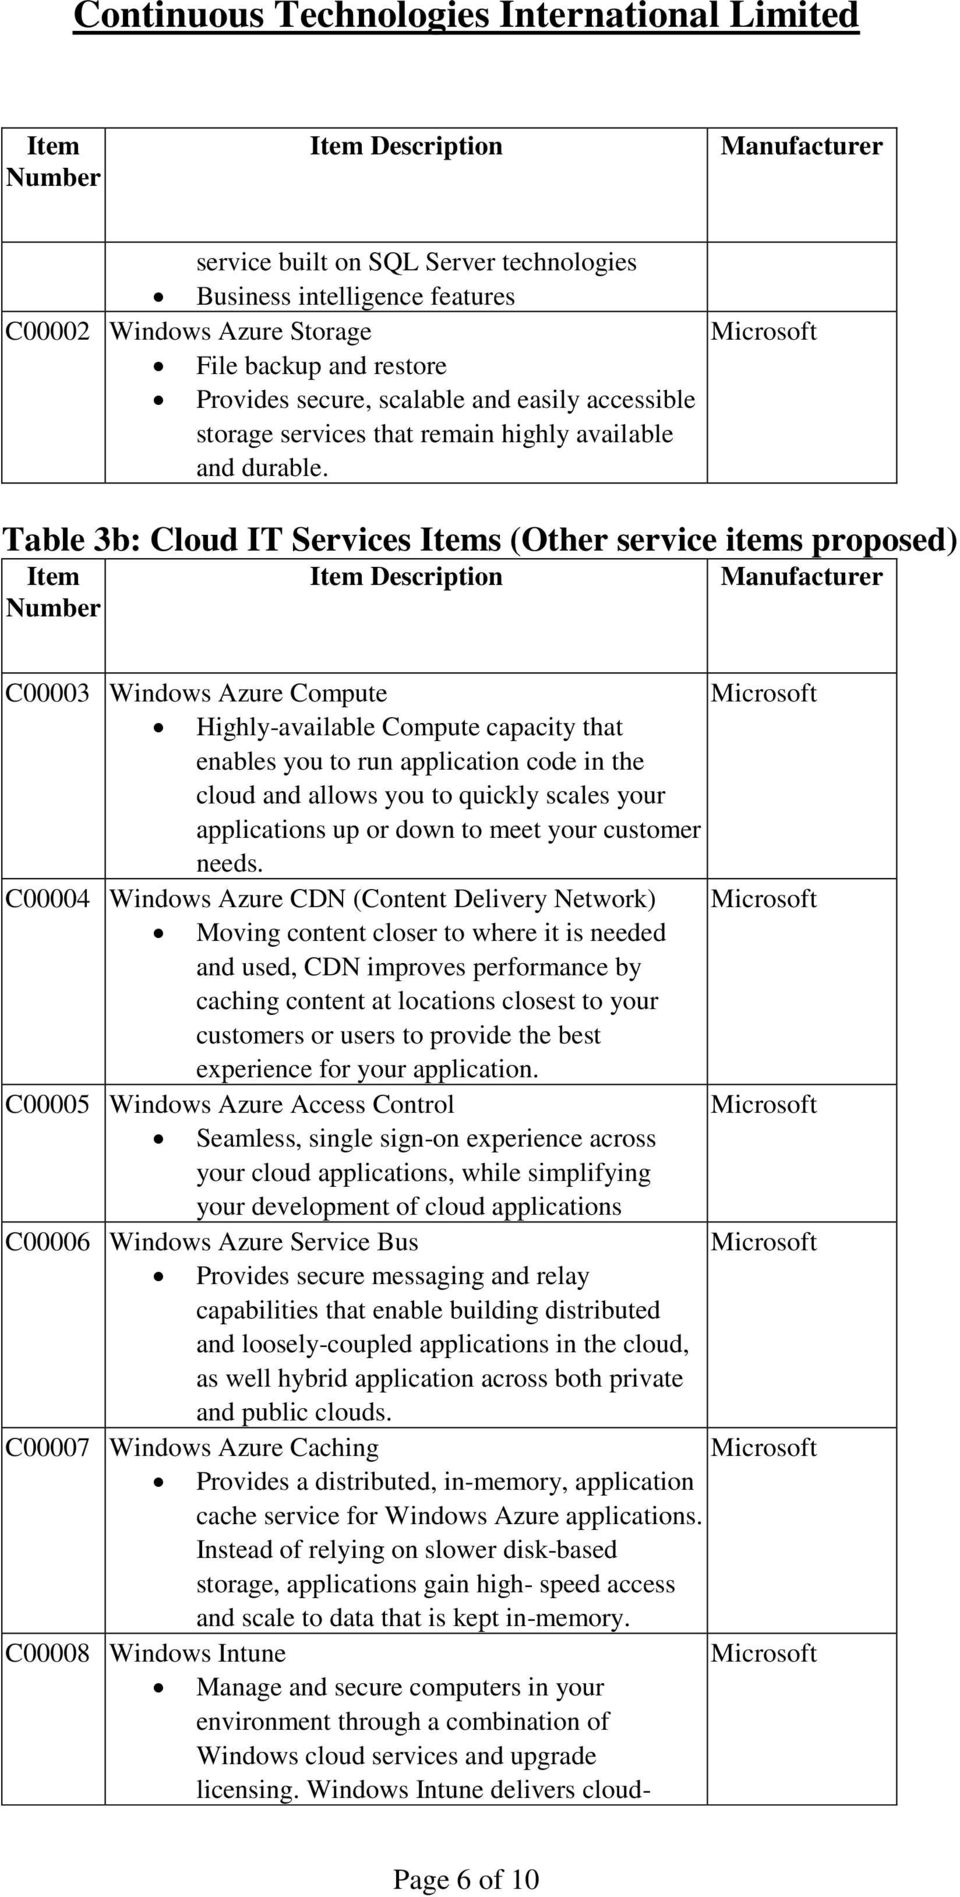 Table 3b: Cloud IT Services s (Other service items proposed) Description C00003 Windows Azure Compute Highly-available Compute capacity that enables you to run application code in the cloud and